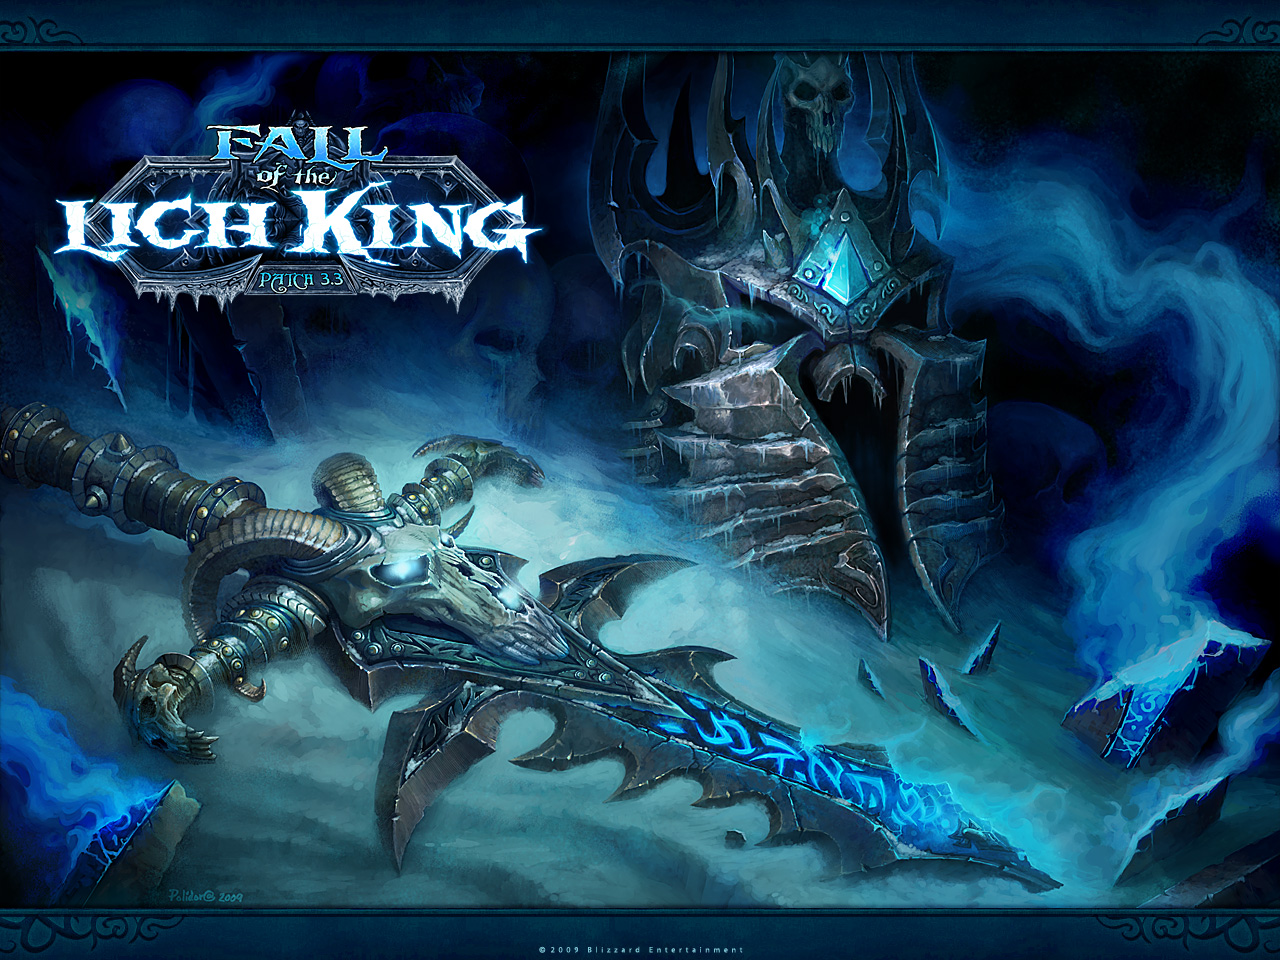 u201cFall of the Lich Kingu201d Patch 330